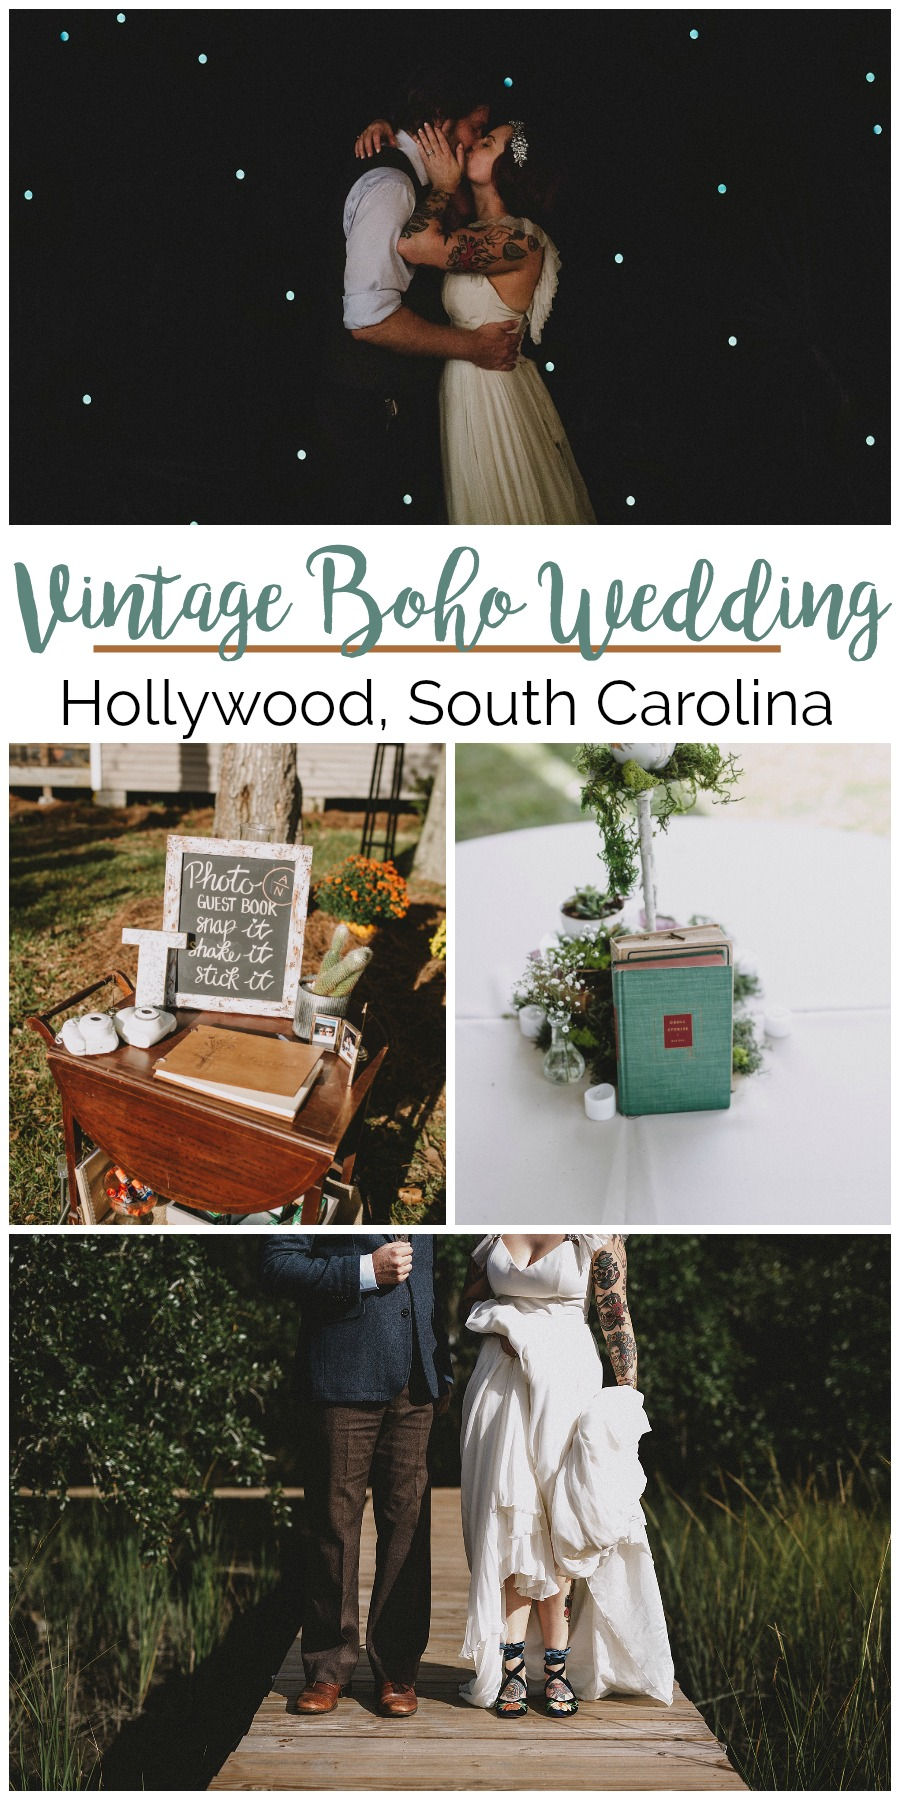 Amy + Nick: A Novel Wedding for Writers in Hollywood | Palmetto State Weddings | Photography by Josh Rigsby Photography | vintage boho wedding | alternative wedding ideas | feminist wedding inspiration | real weddings in Charleston | Charleston SC weddings